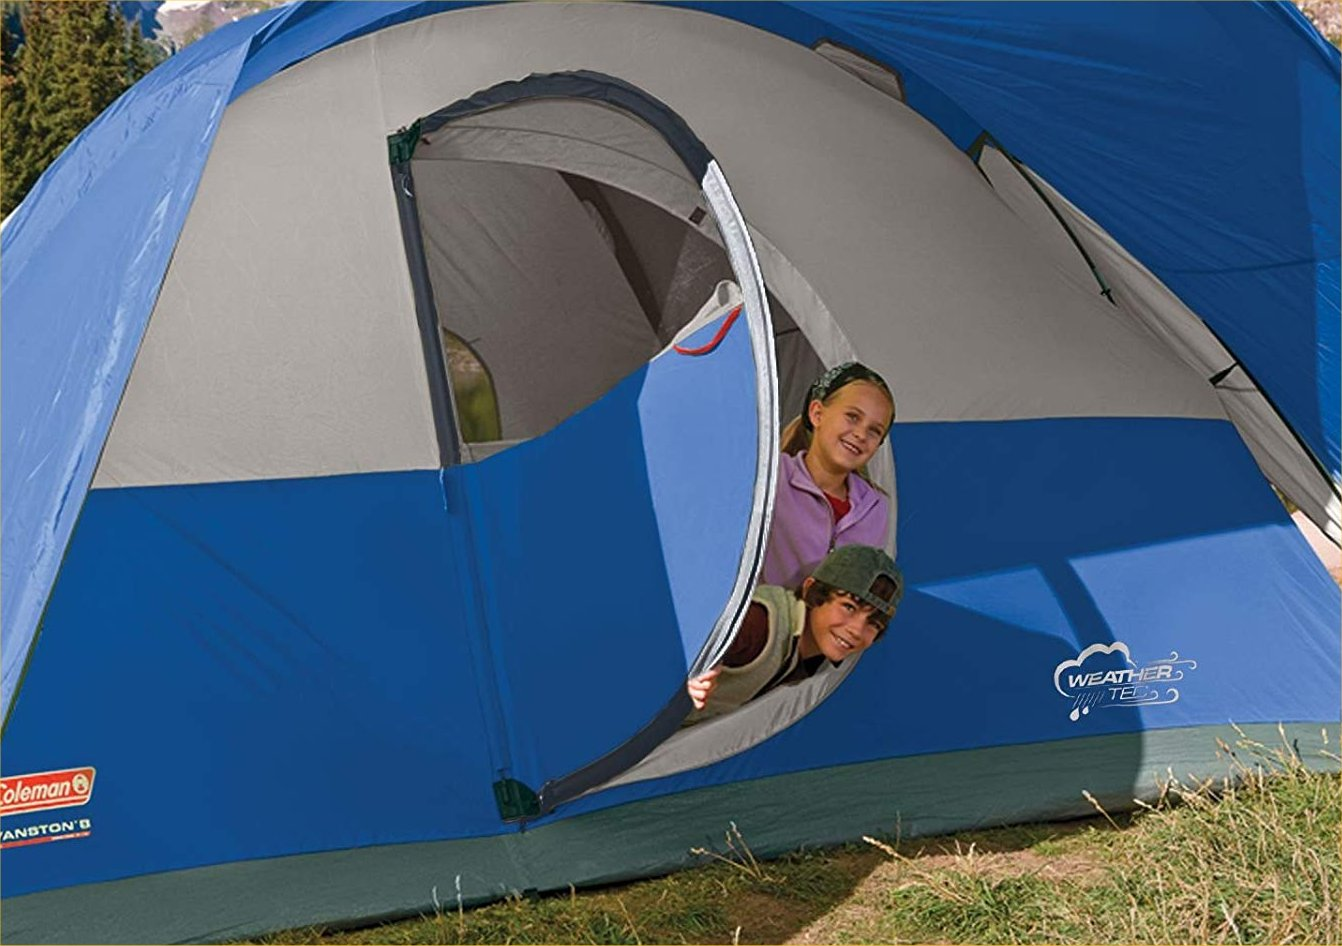 coleman montana 8-person tent review -- roomy enough for your kids and your gear